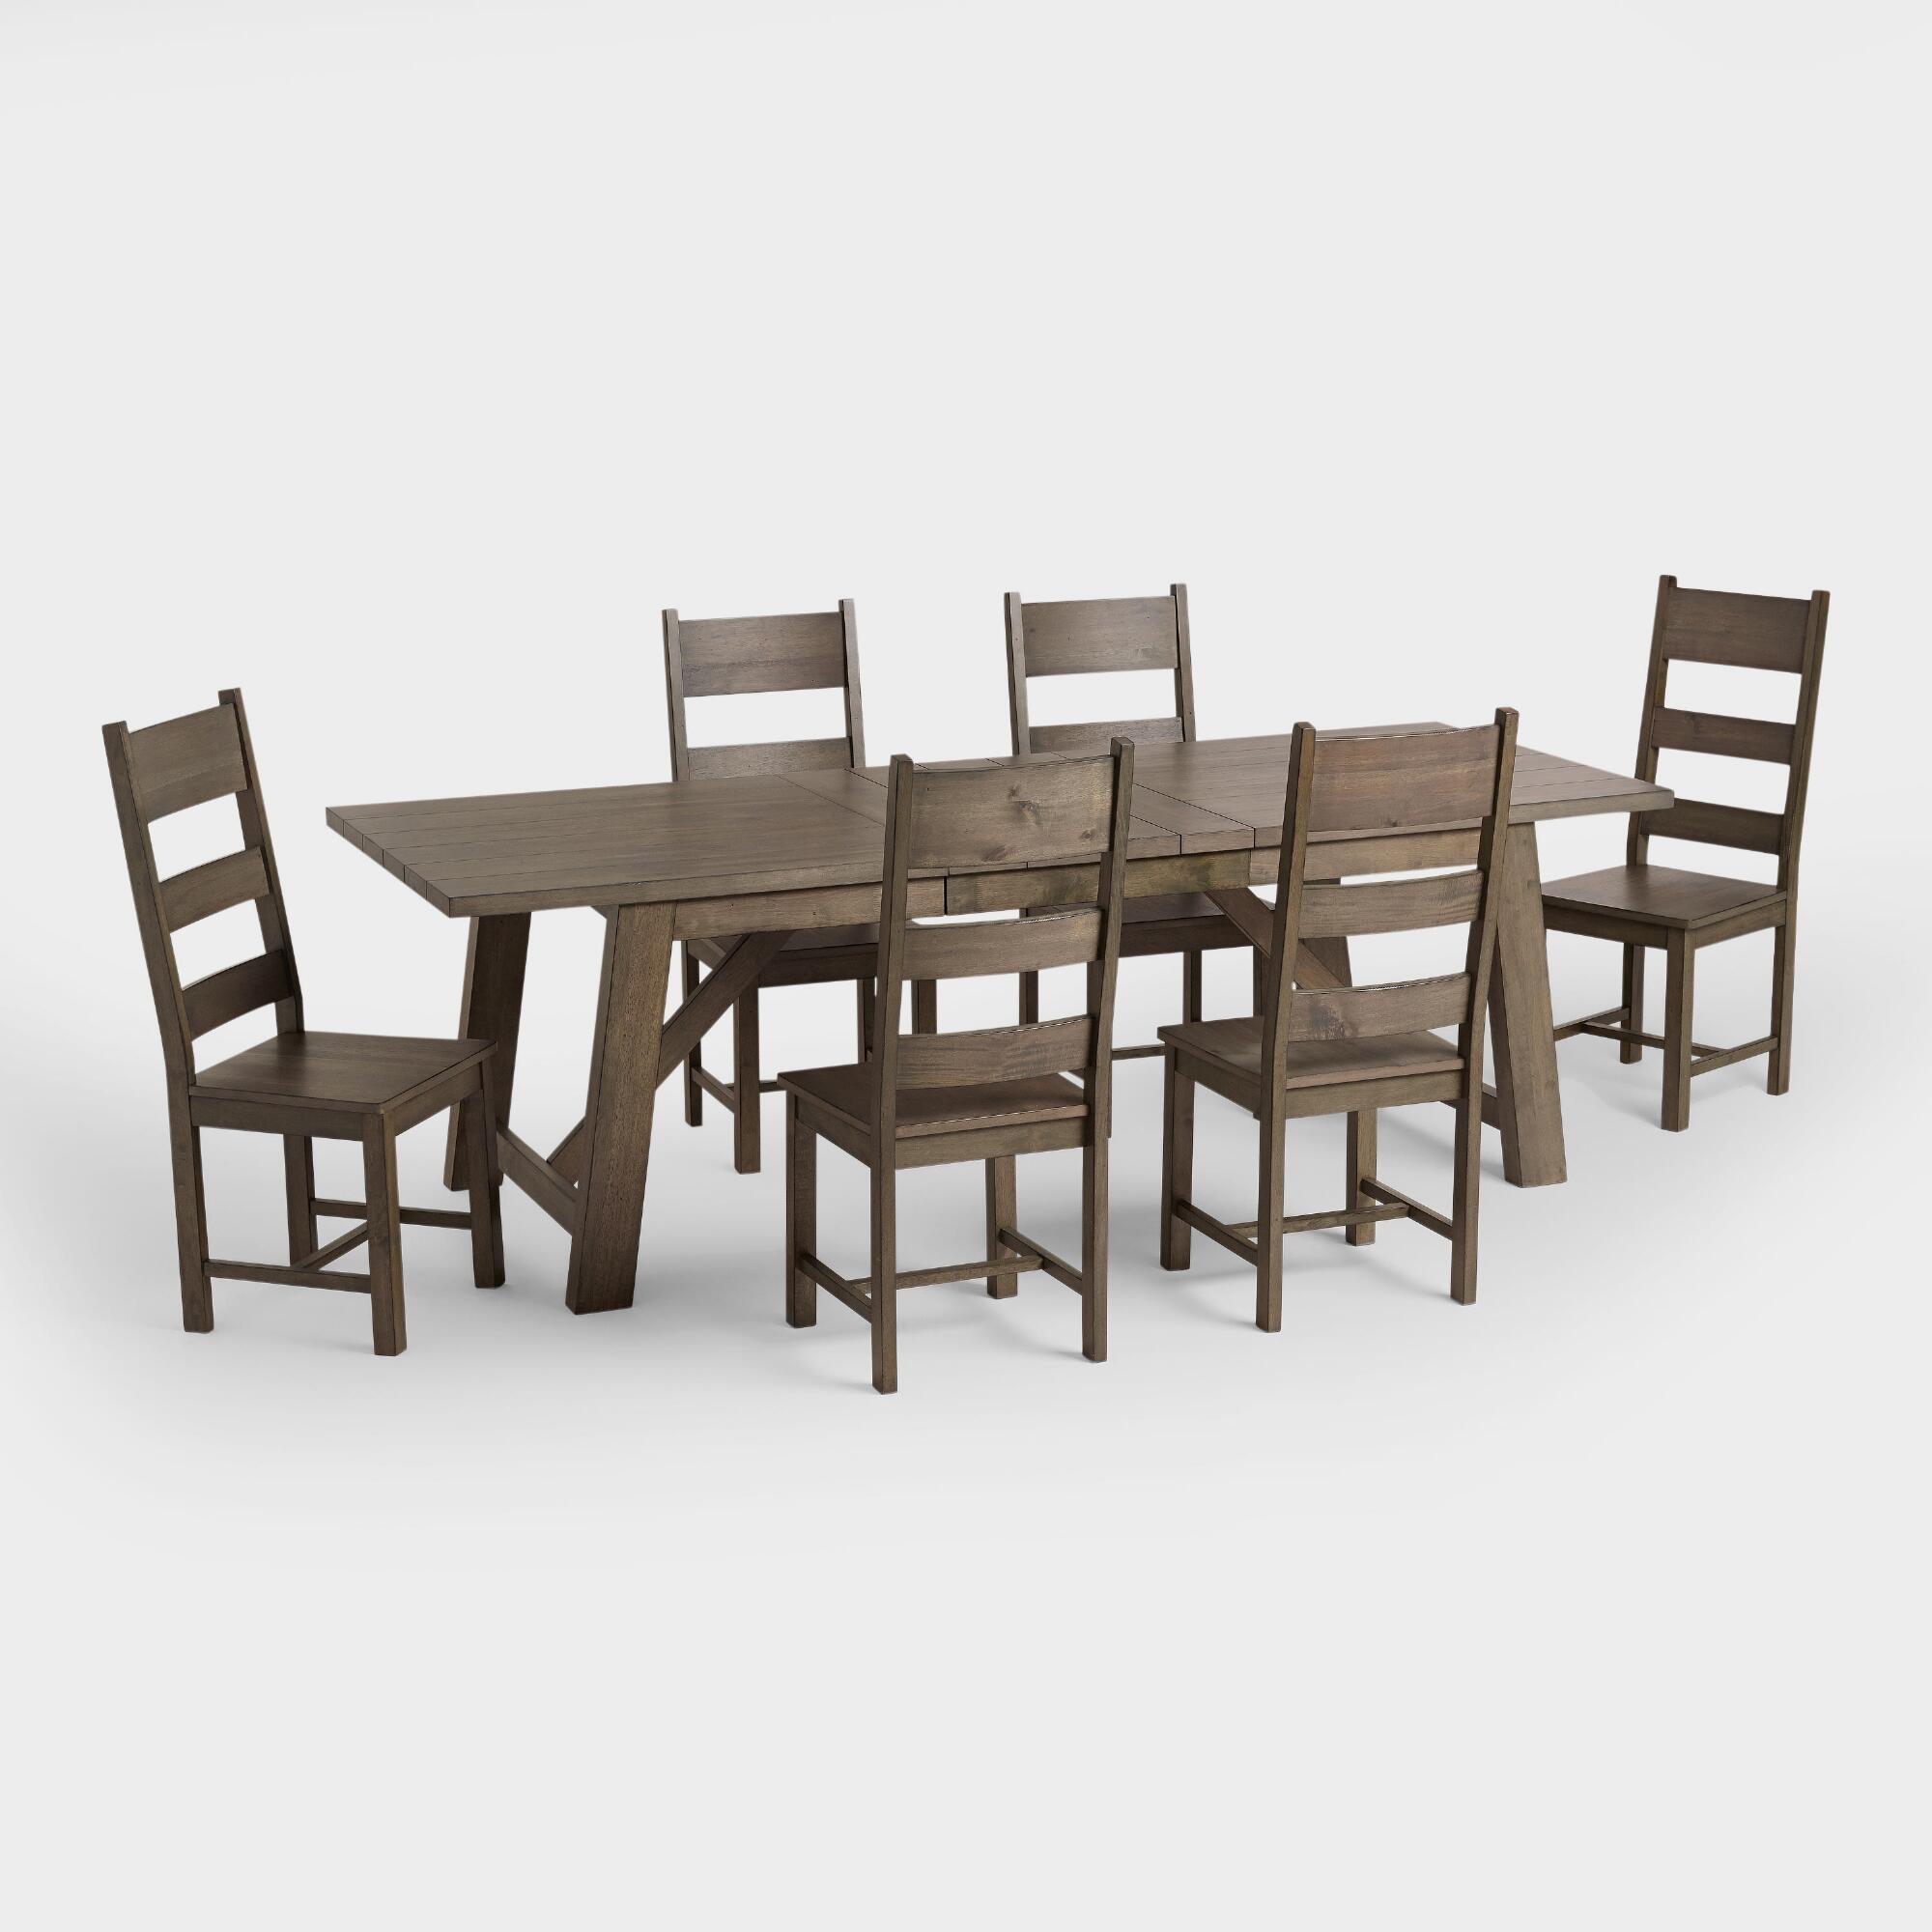 Farmhouse dining furniture collection world market for Outdoor furniture covers world market